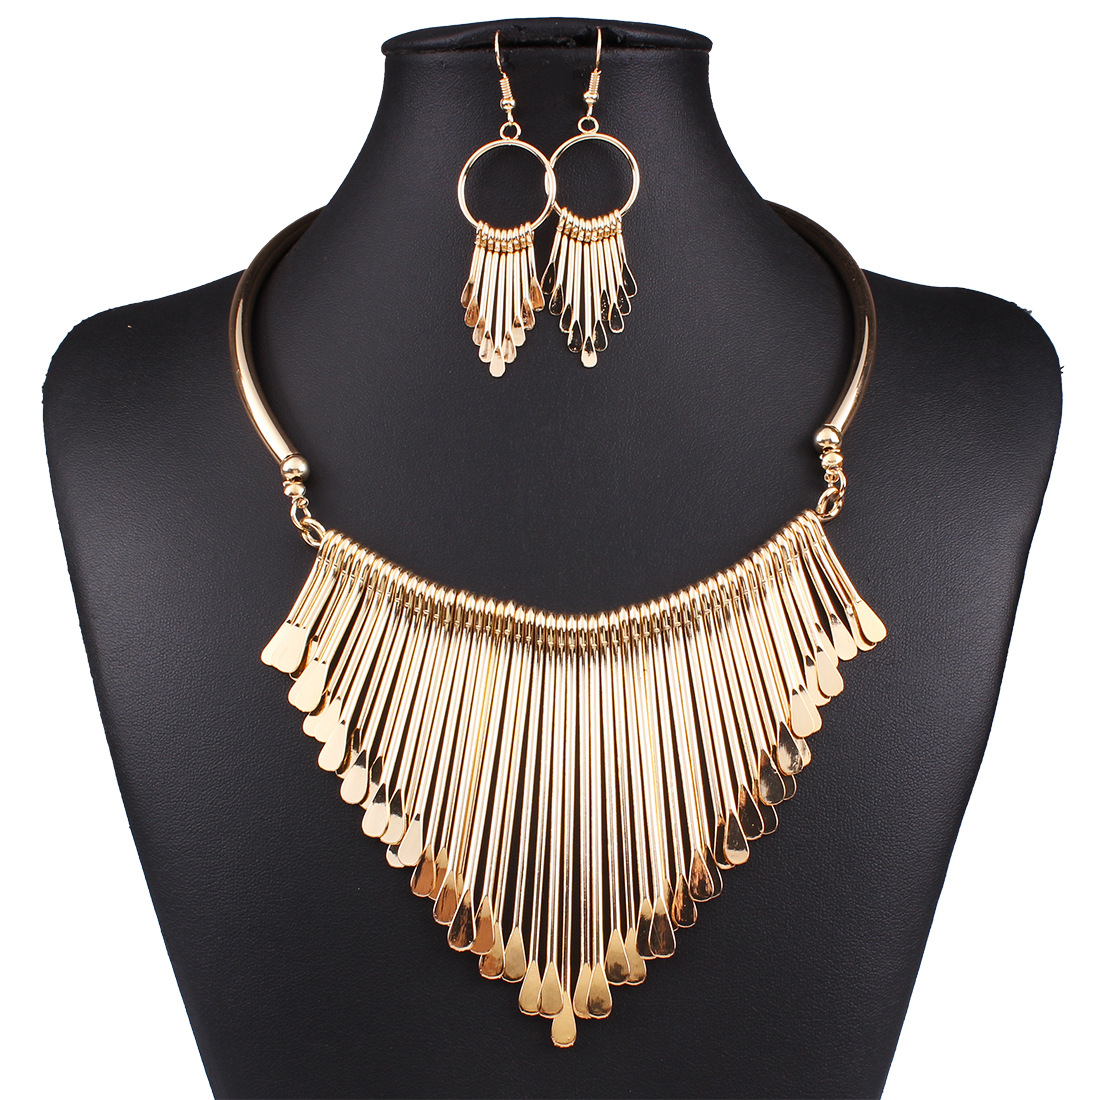 Occident wild temperament multilayer tassel necklace sets ( Golden ) NHNMD1066